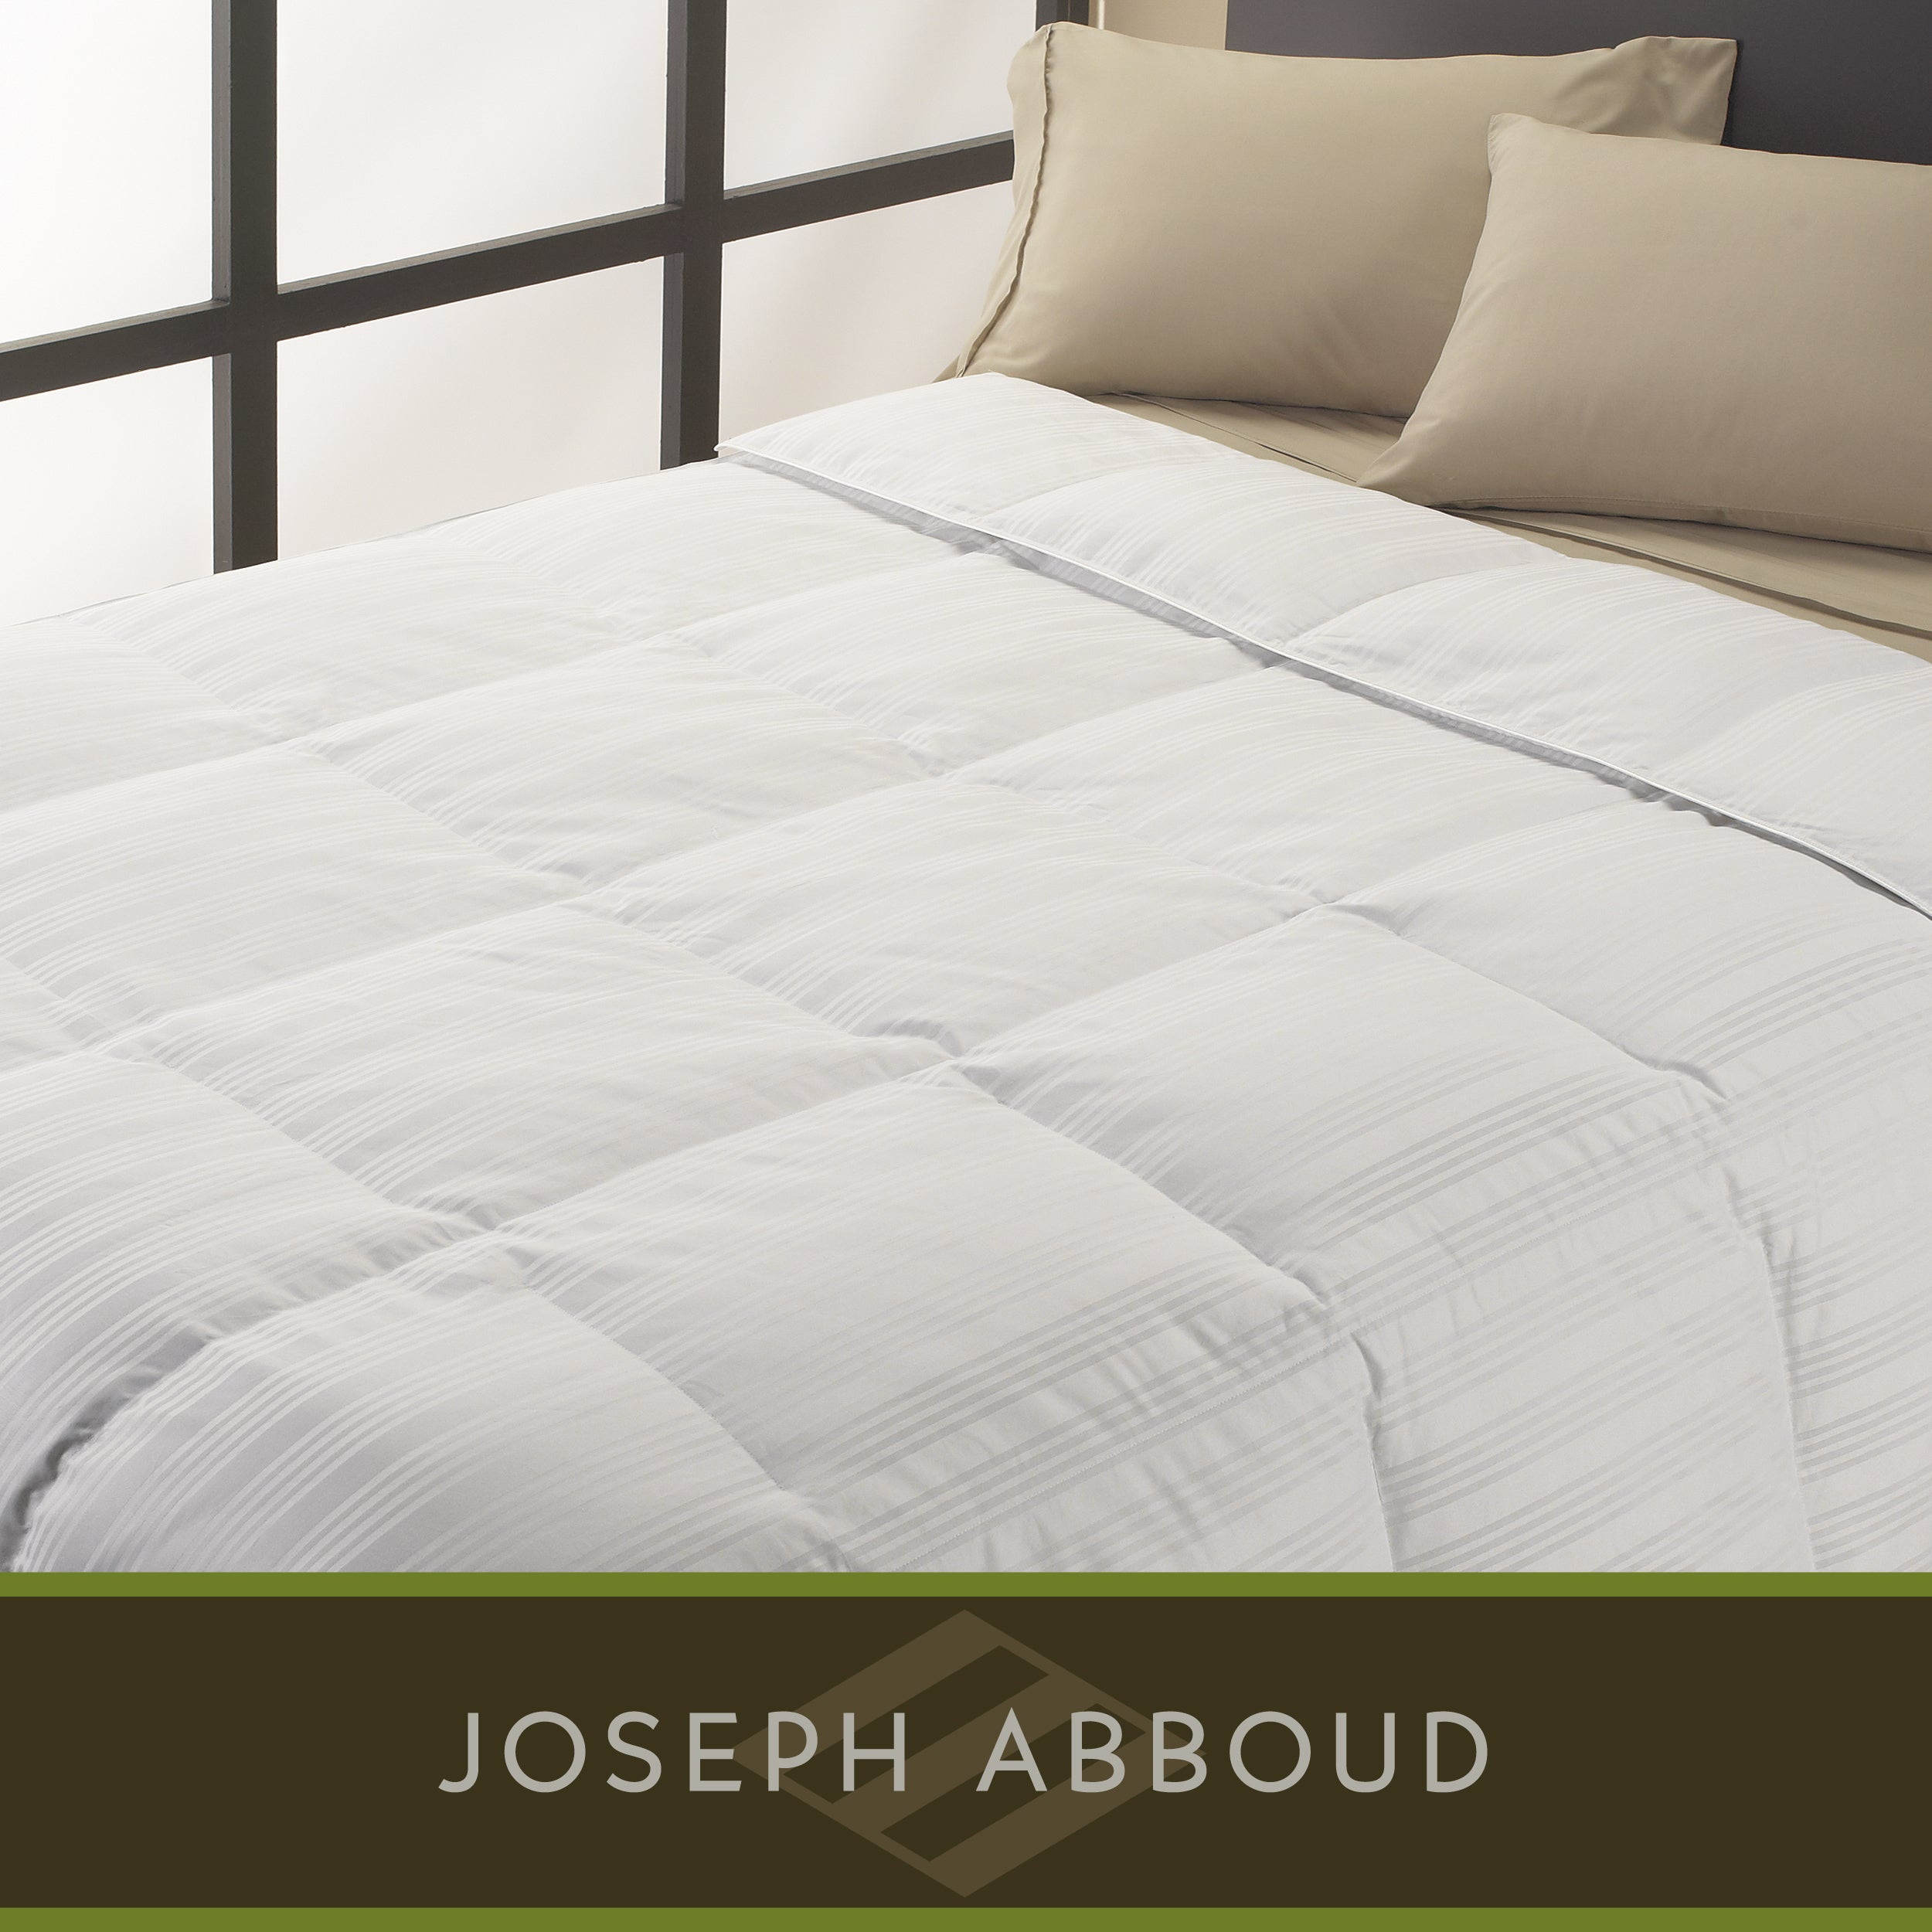 Joseph Abboud 1000 Thread Count Twin-size White Goose Down Comforter